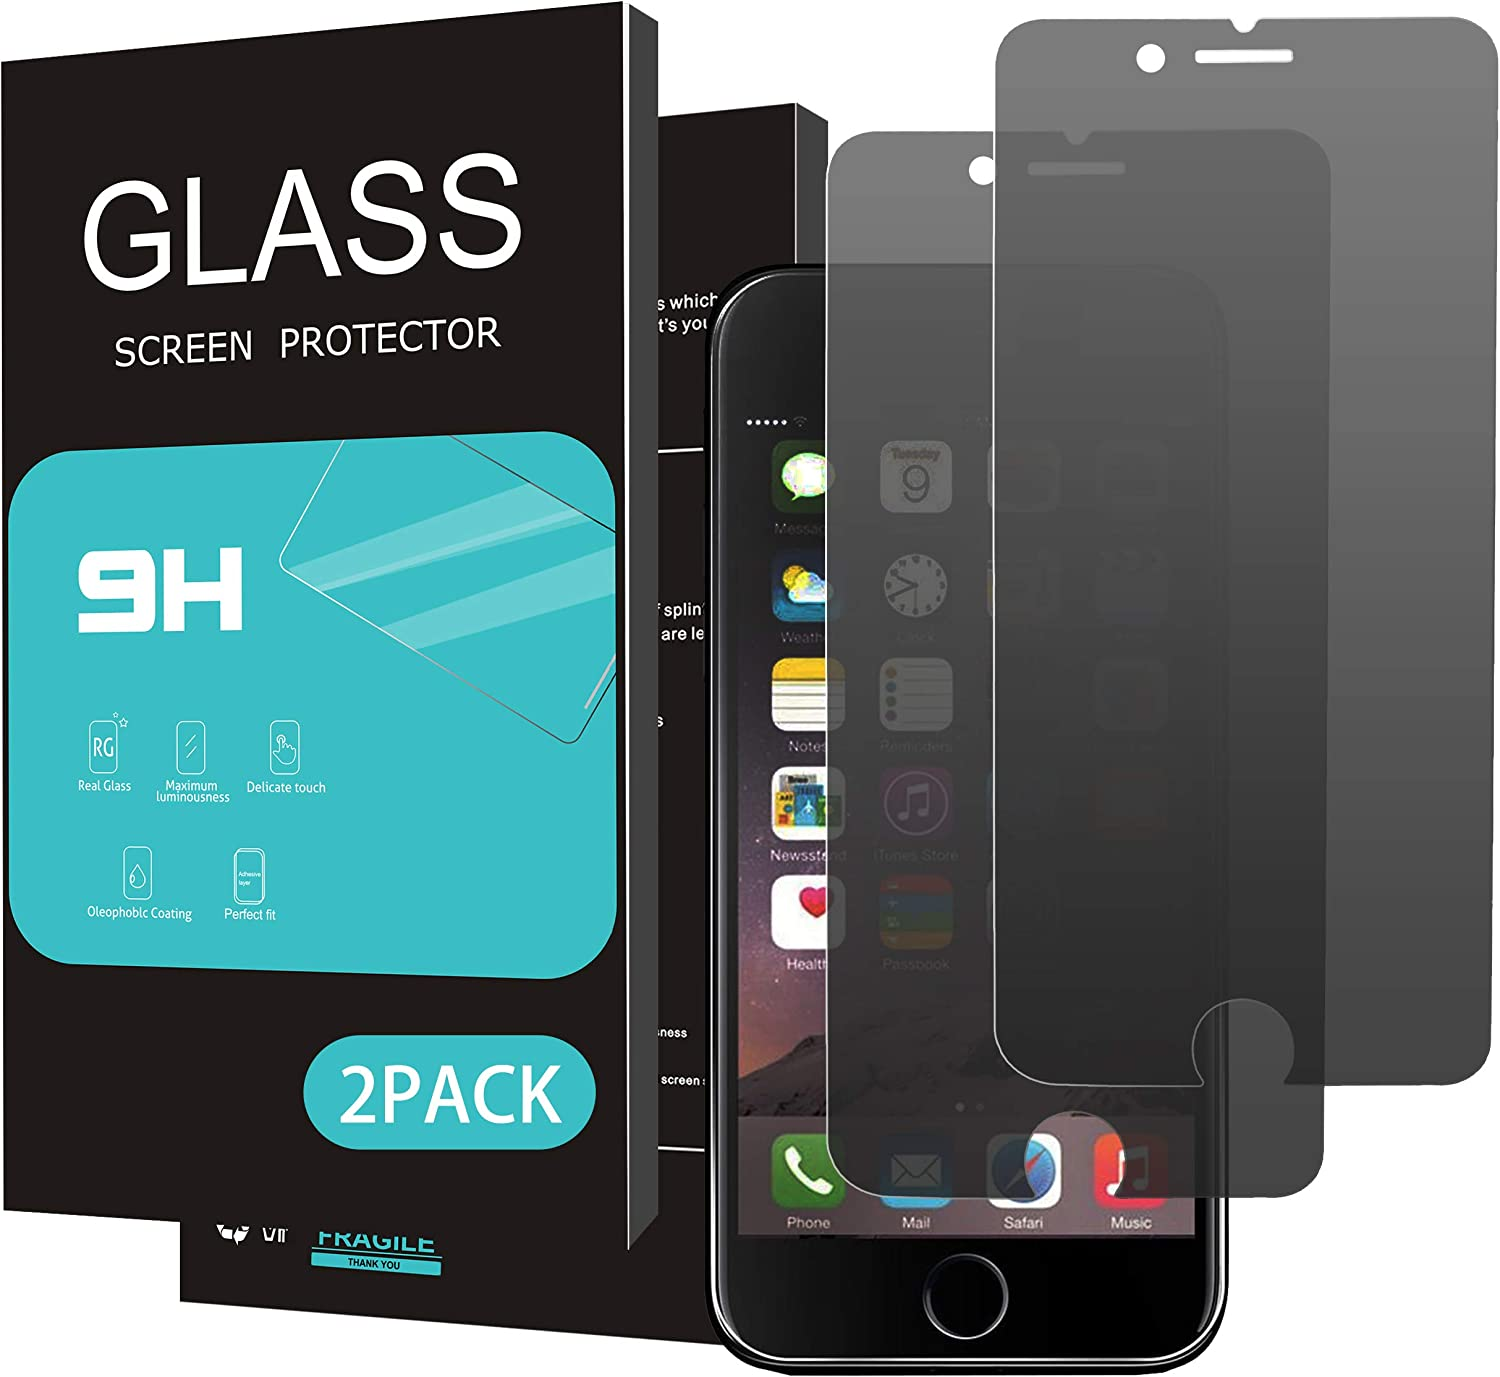 HOMEMO Privacy Screen Protector for iPhone 8 Plus 7 Plus Full Coverage,Anti-Spy,Anti-Glare,[2 Pack] 2.5D Edge Tempered Glass for iPhone 8/7 Plus,Anti-Scratch,Case Friendly